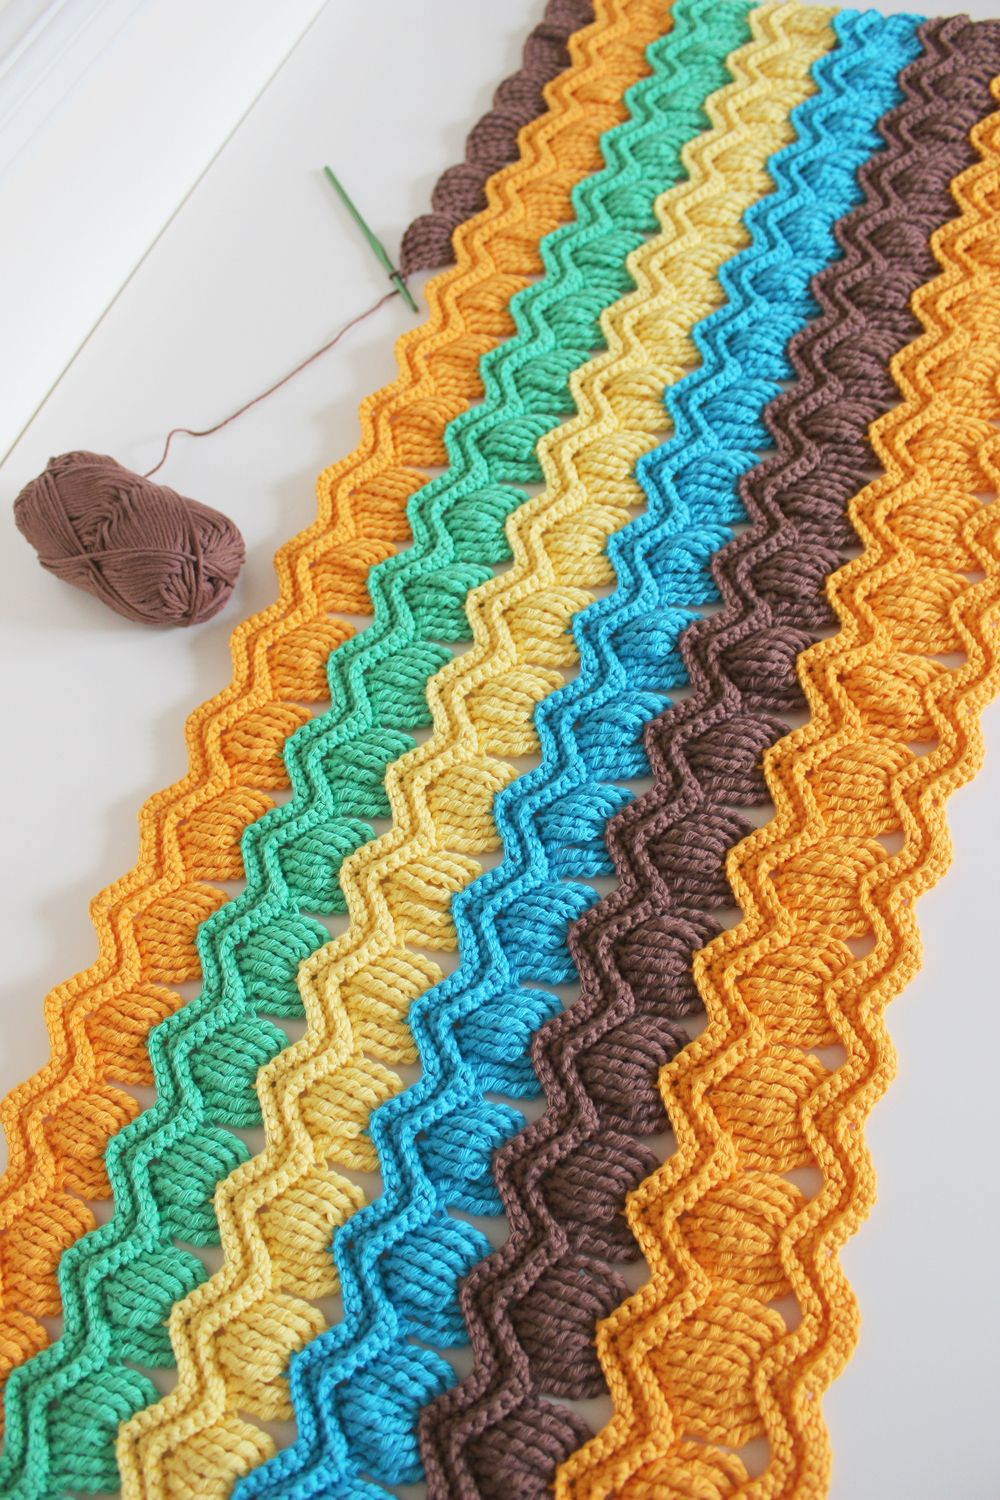 crochet fan ripple blanket pattern FREE | Crafts: Crochet ...